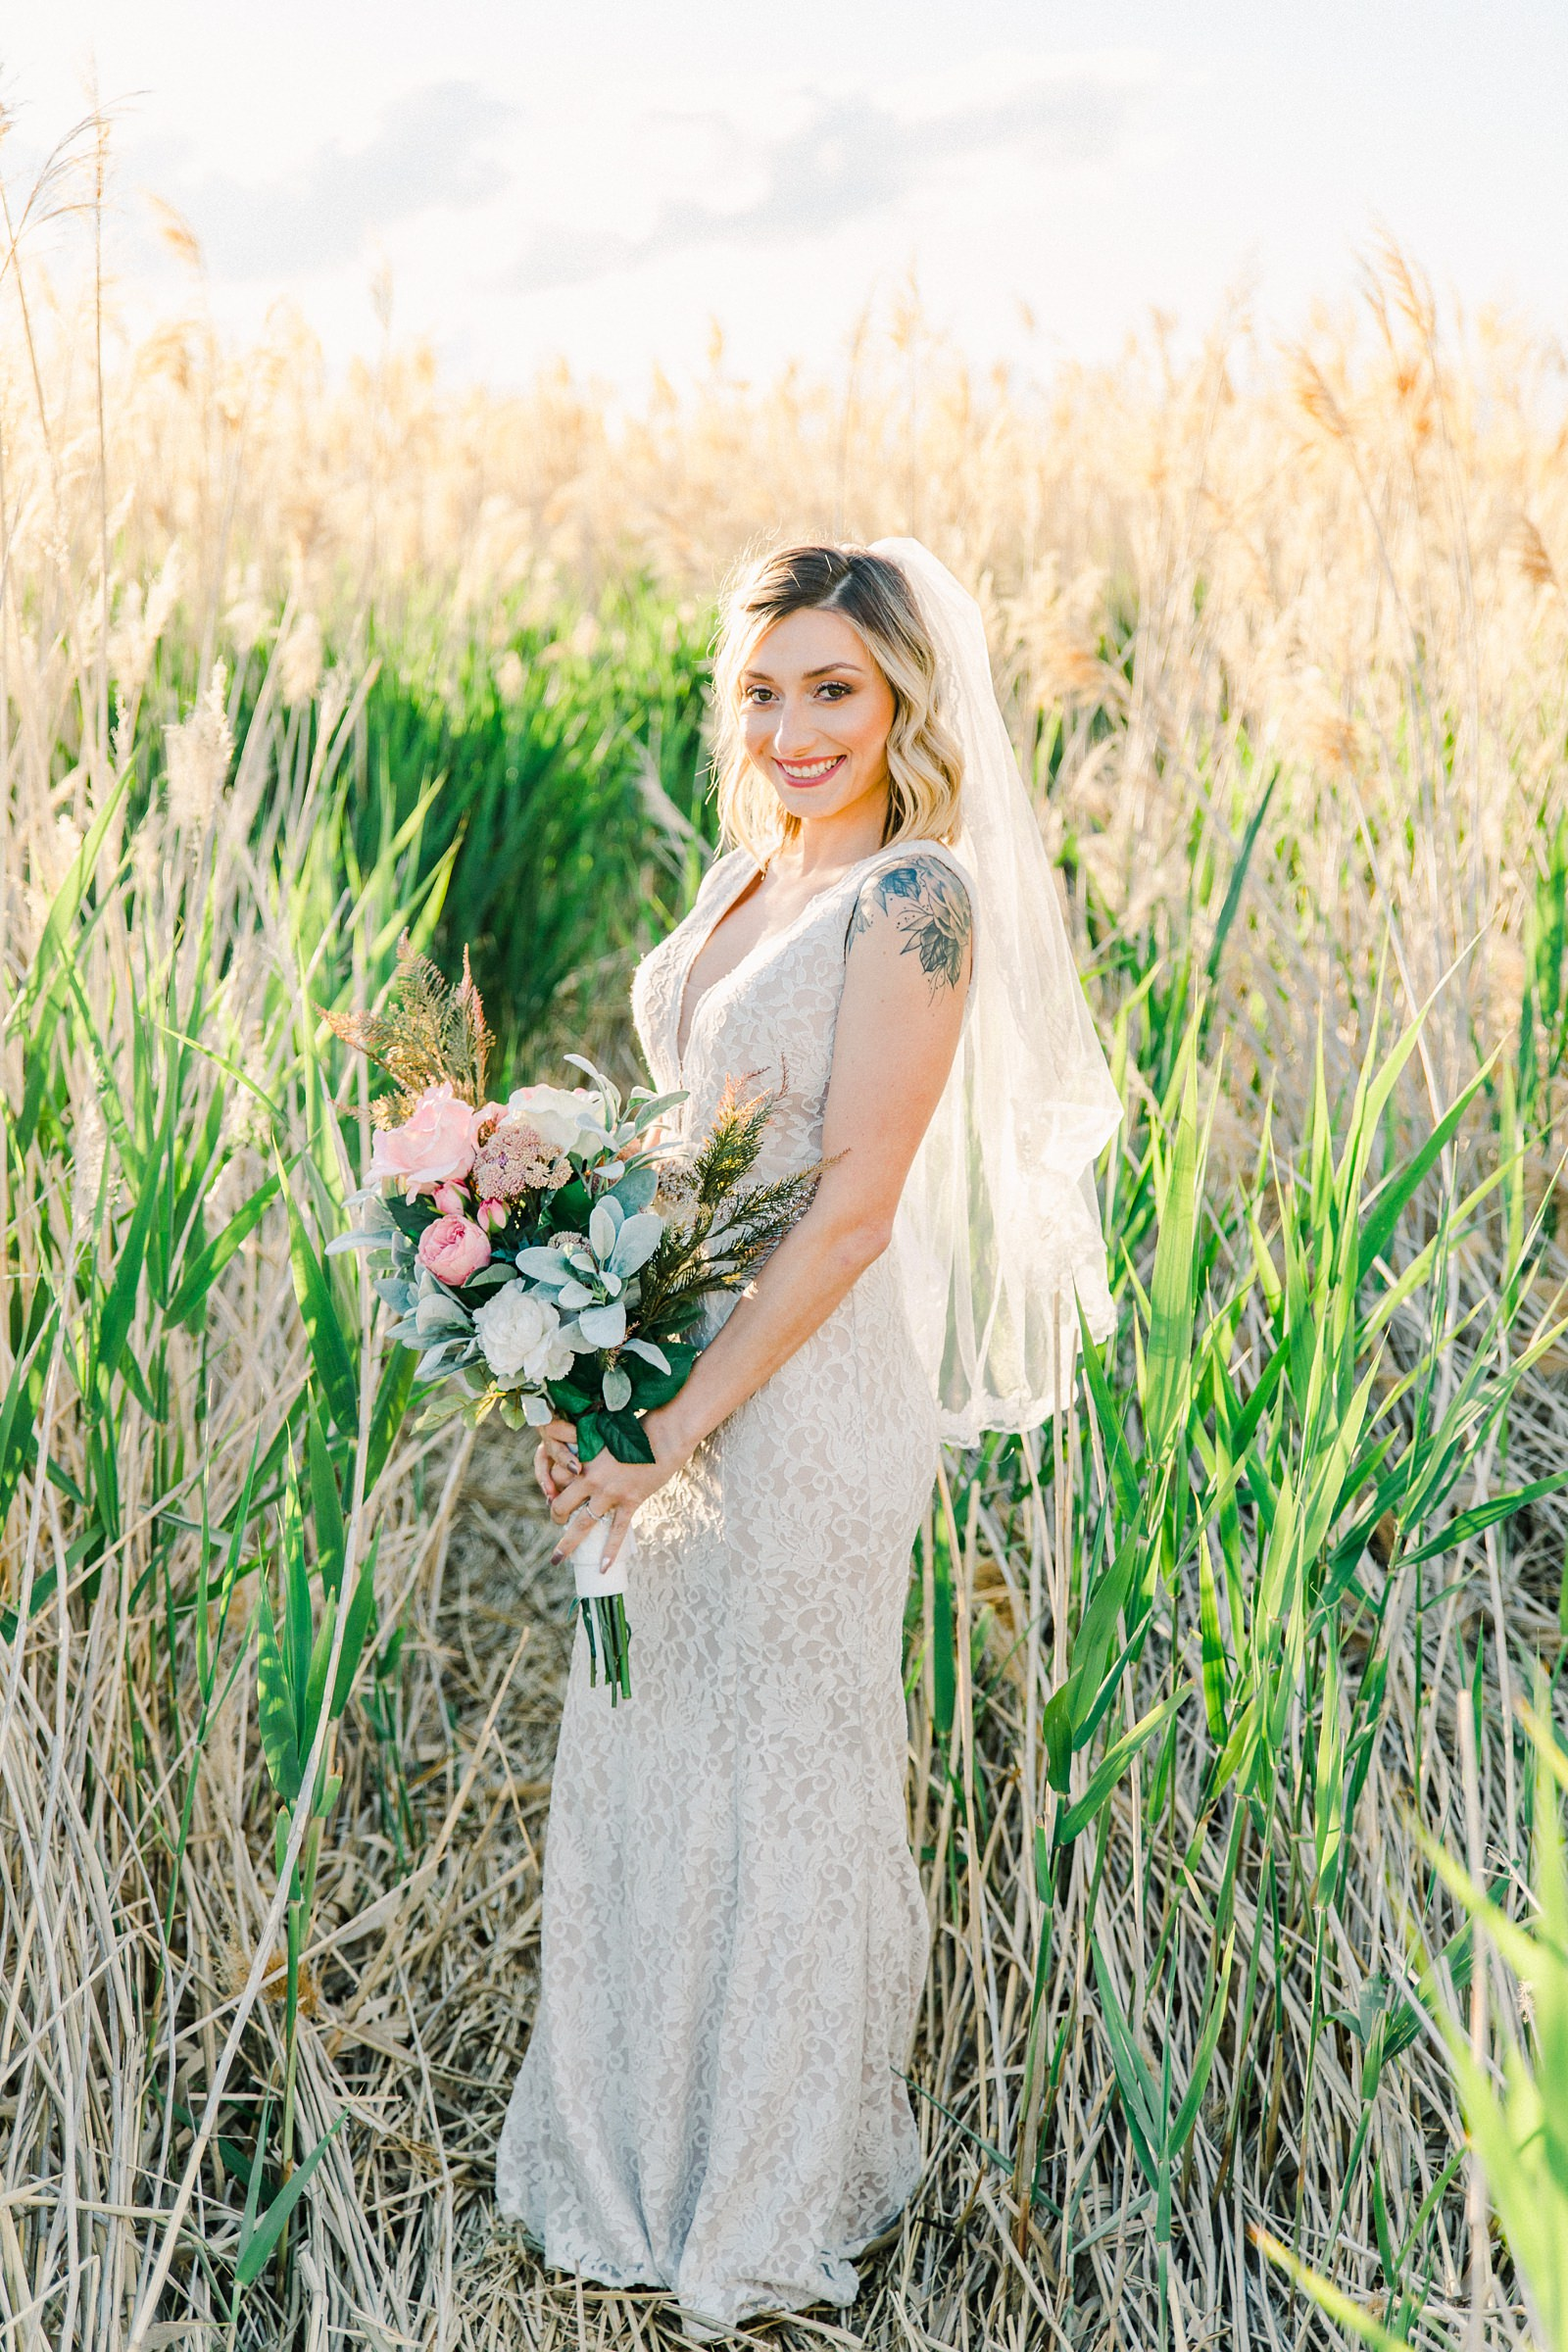 Salt Lake City Utah Bridal Wedding Photography, Tunnel Springs Park, bride in vintage lace dress with fingertip veil and pink bouquet